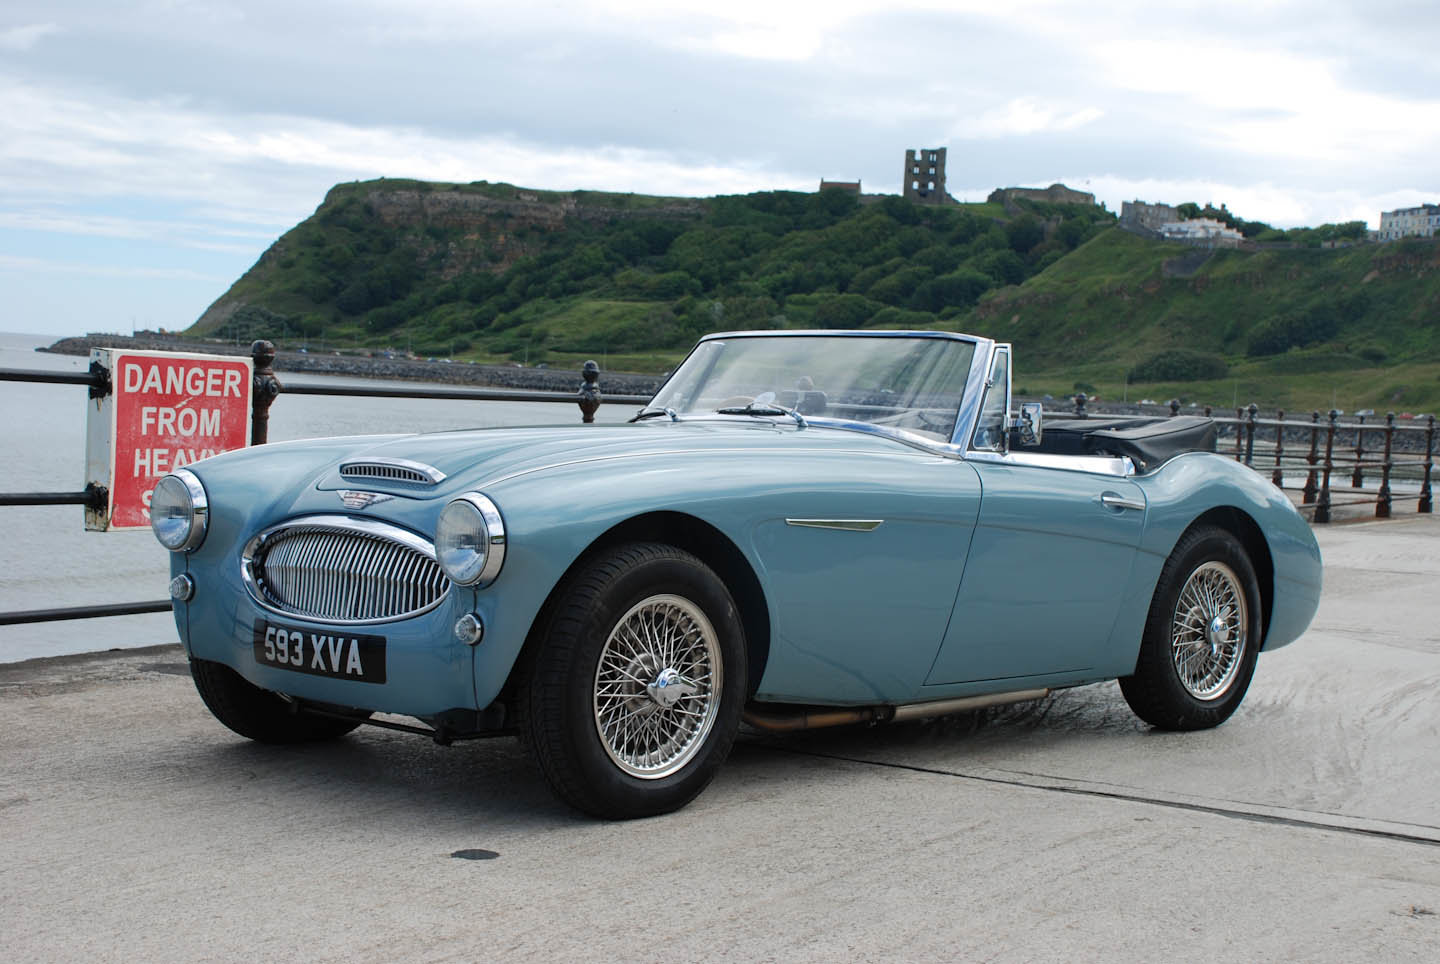 1962 Austin Healey 3000 Mk 2a BJ7 For Sale (picture 7 of 10)